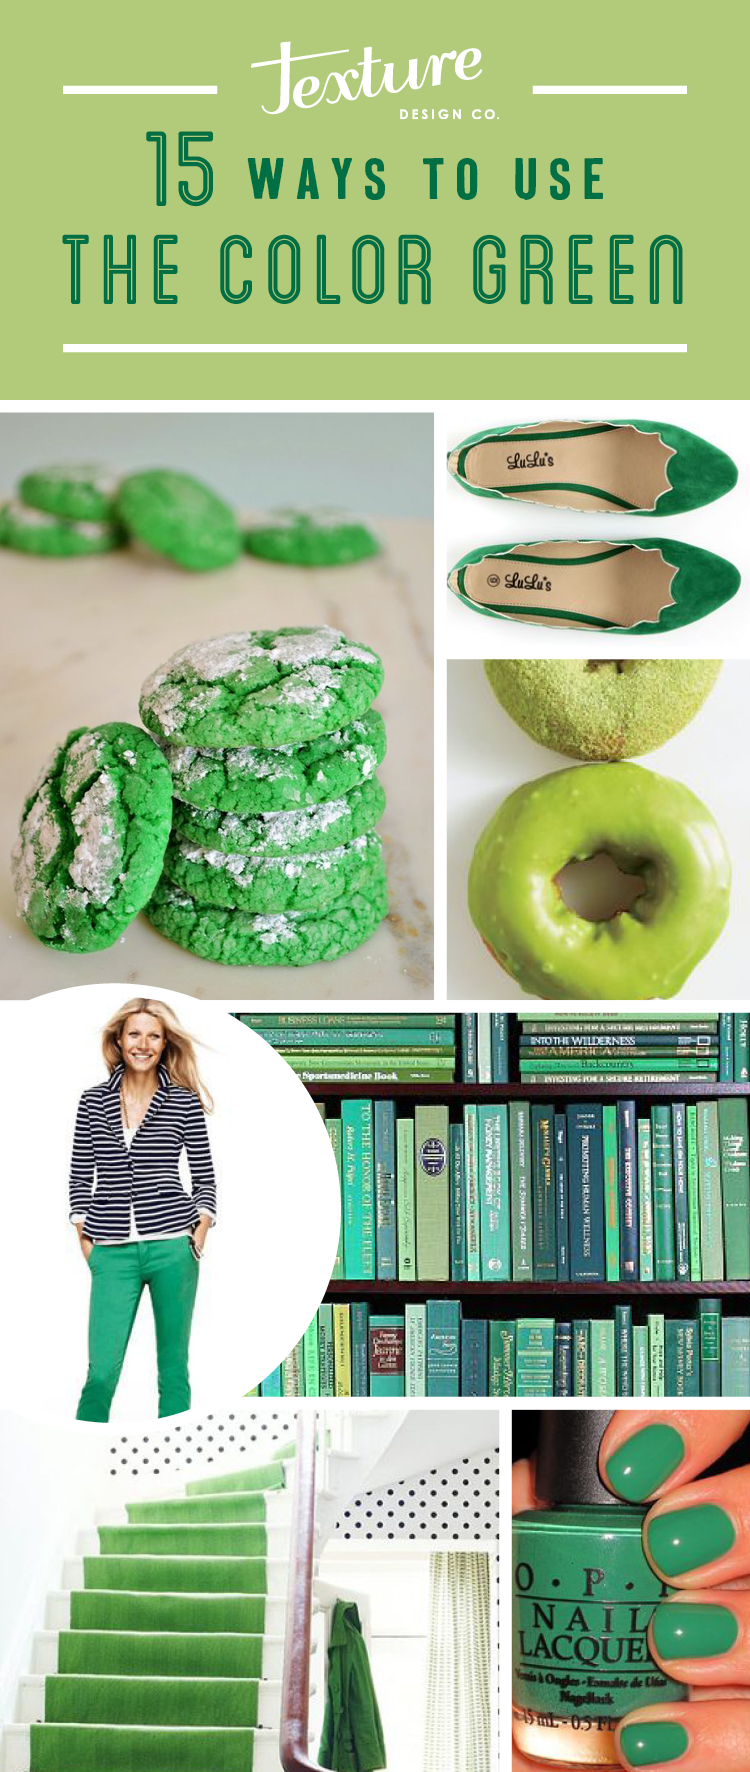 15 Ways to Use the color Green